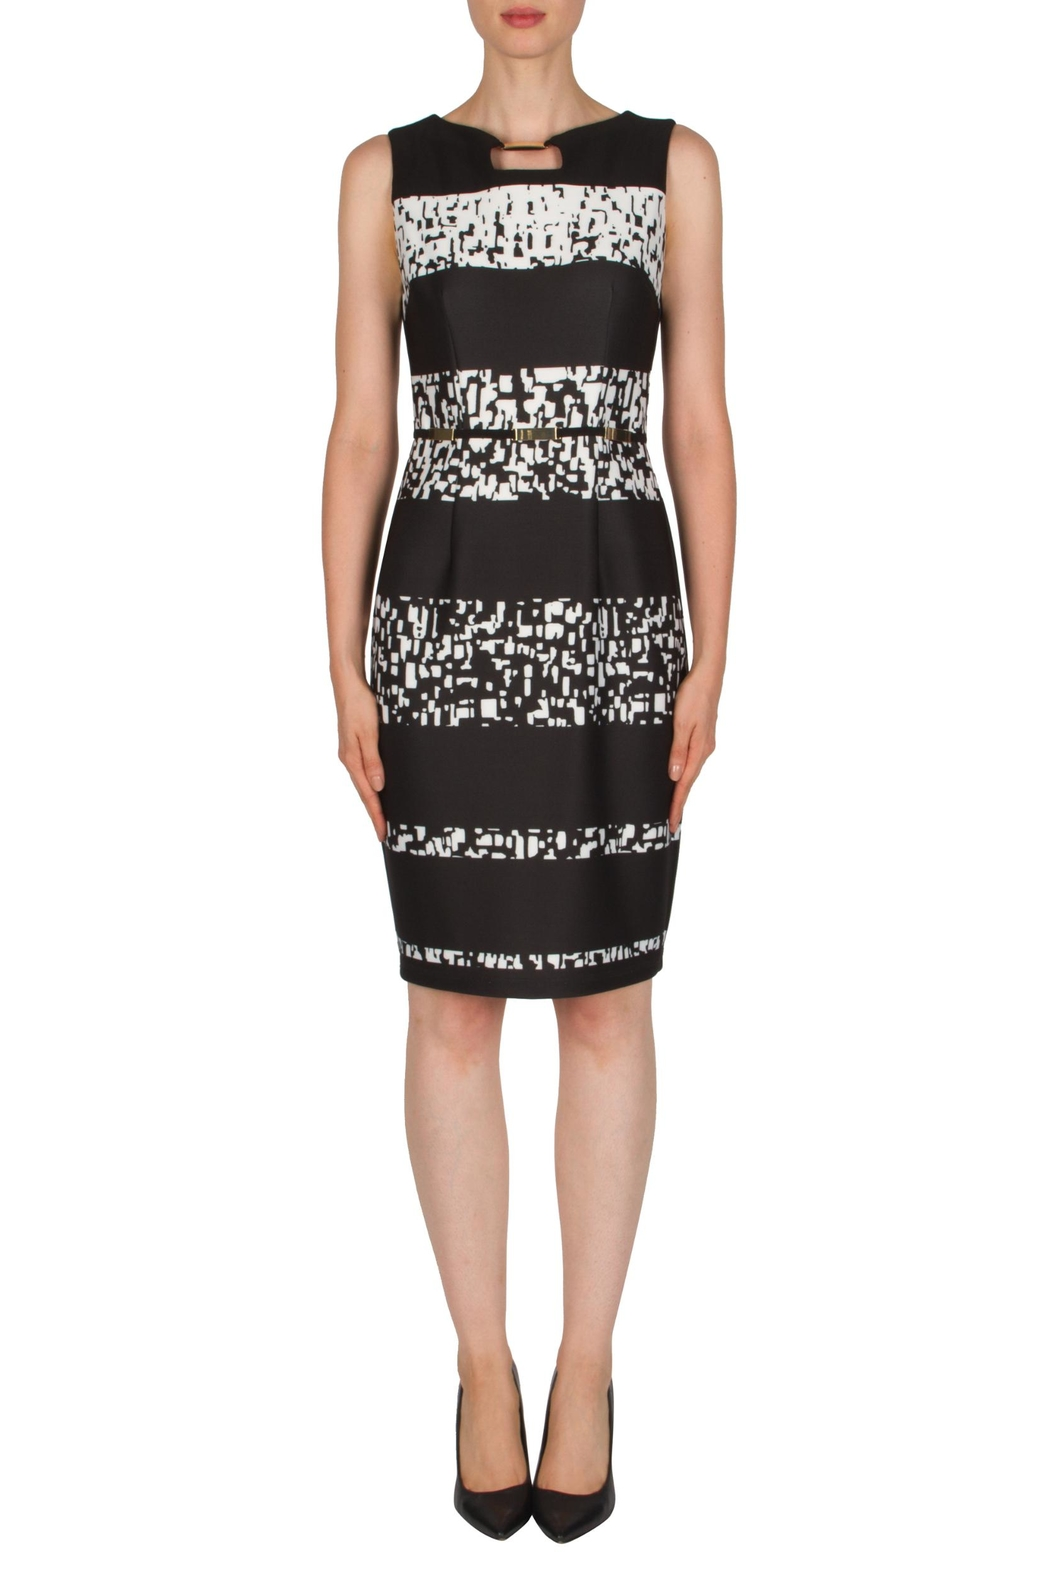 Joseph Ribkoff Banded Printed Dress - Front Cropped Image